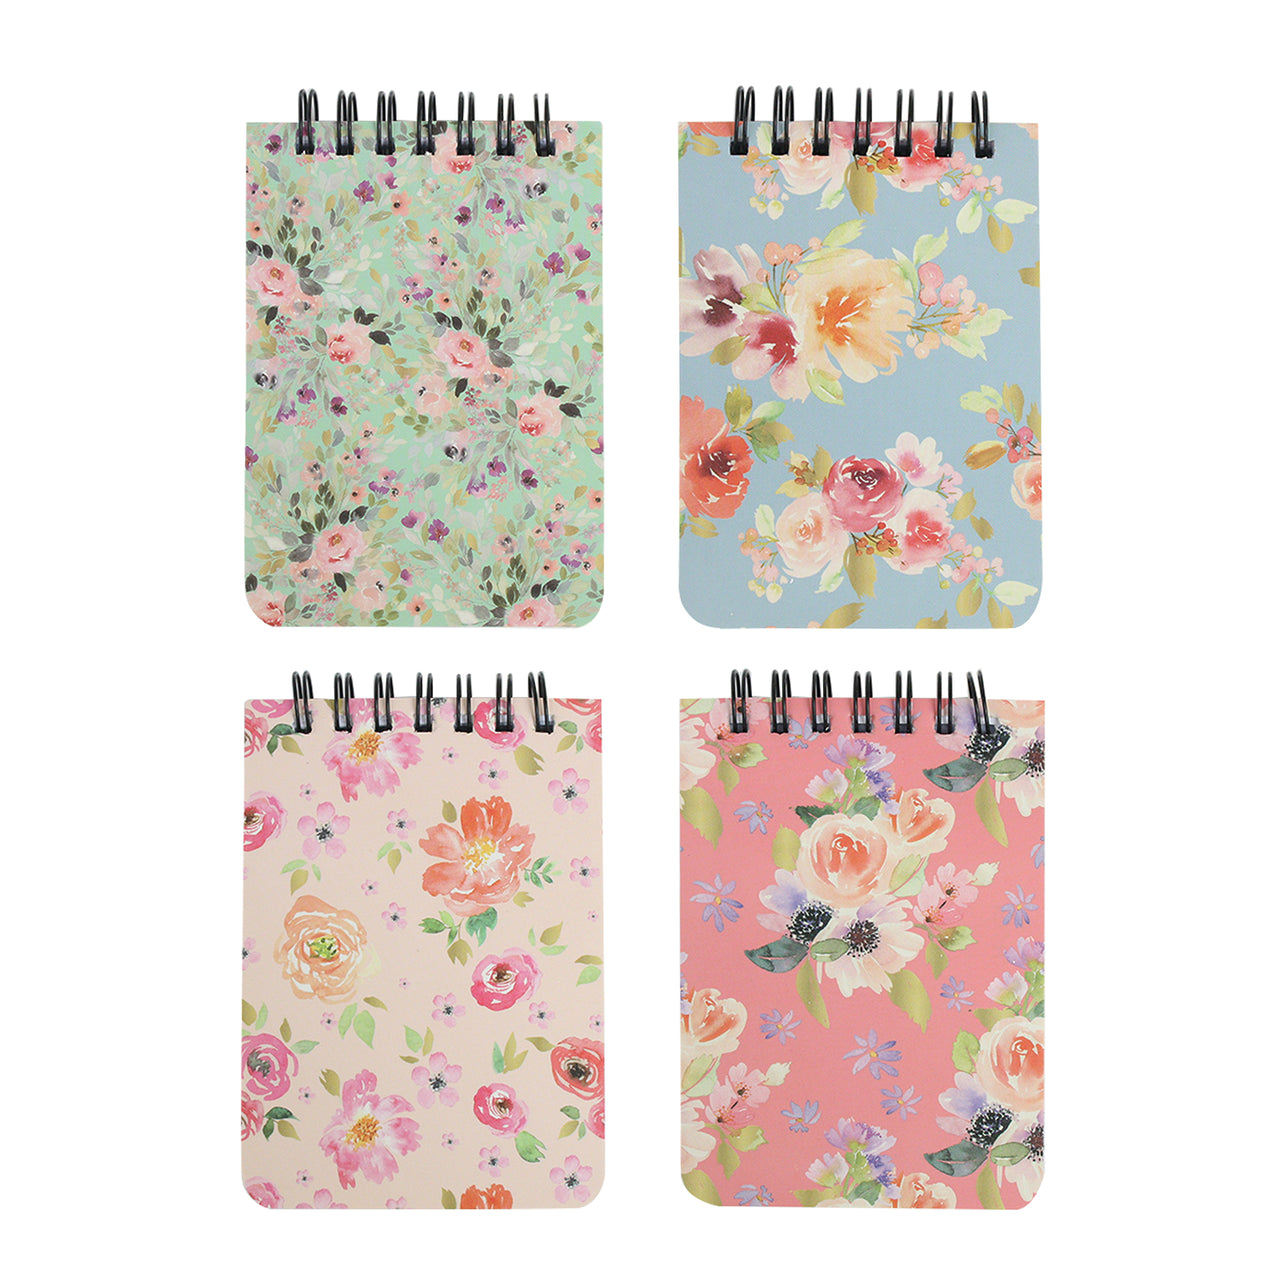 A7 Floral Notebook - Set of 4